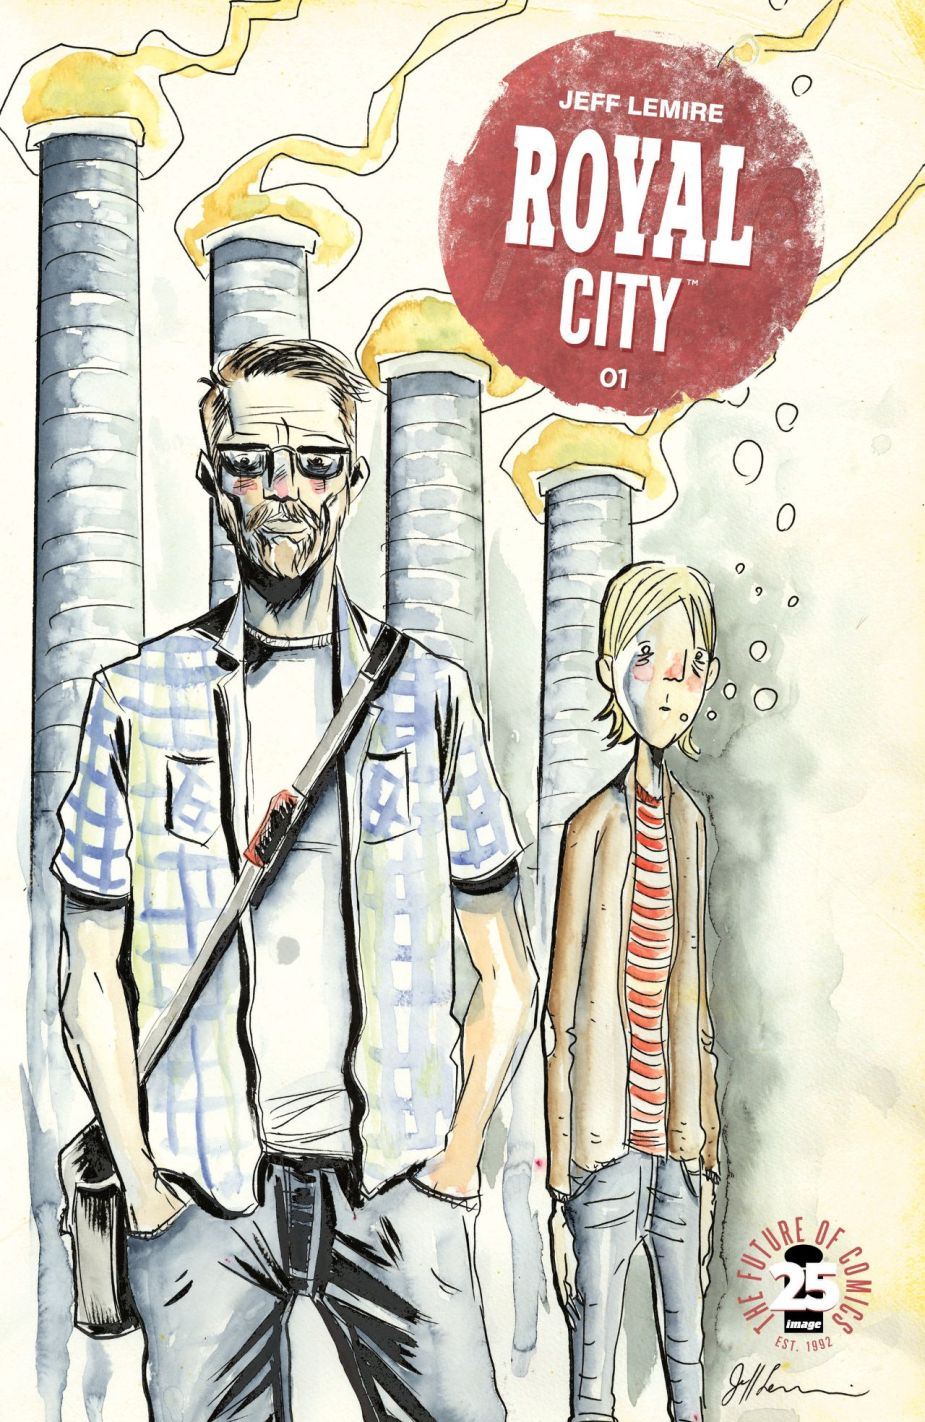 Image result for Royal city comic